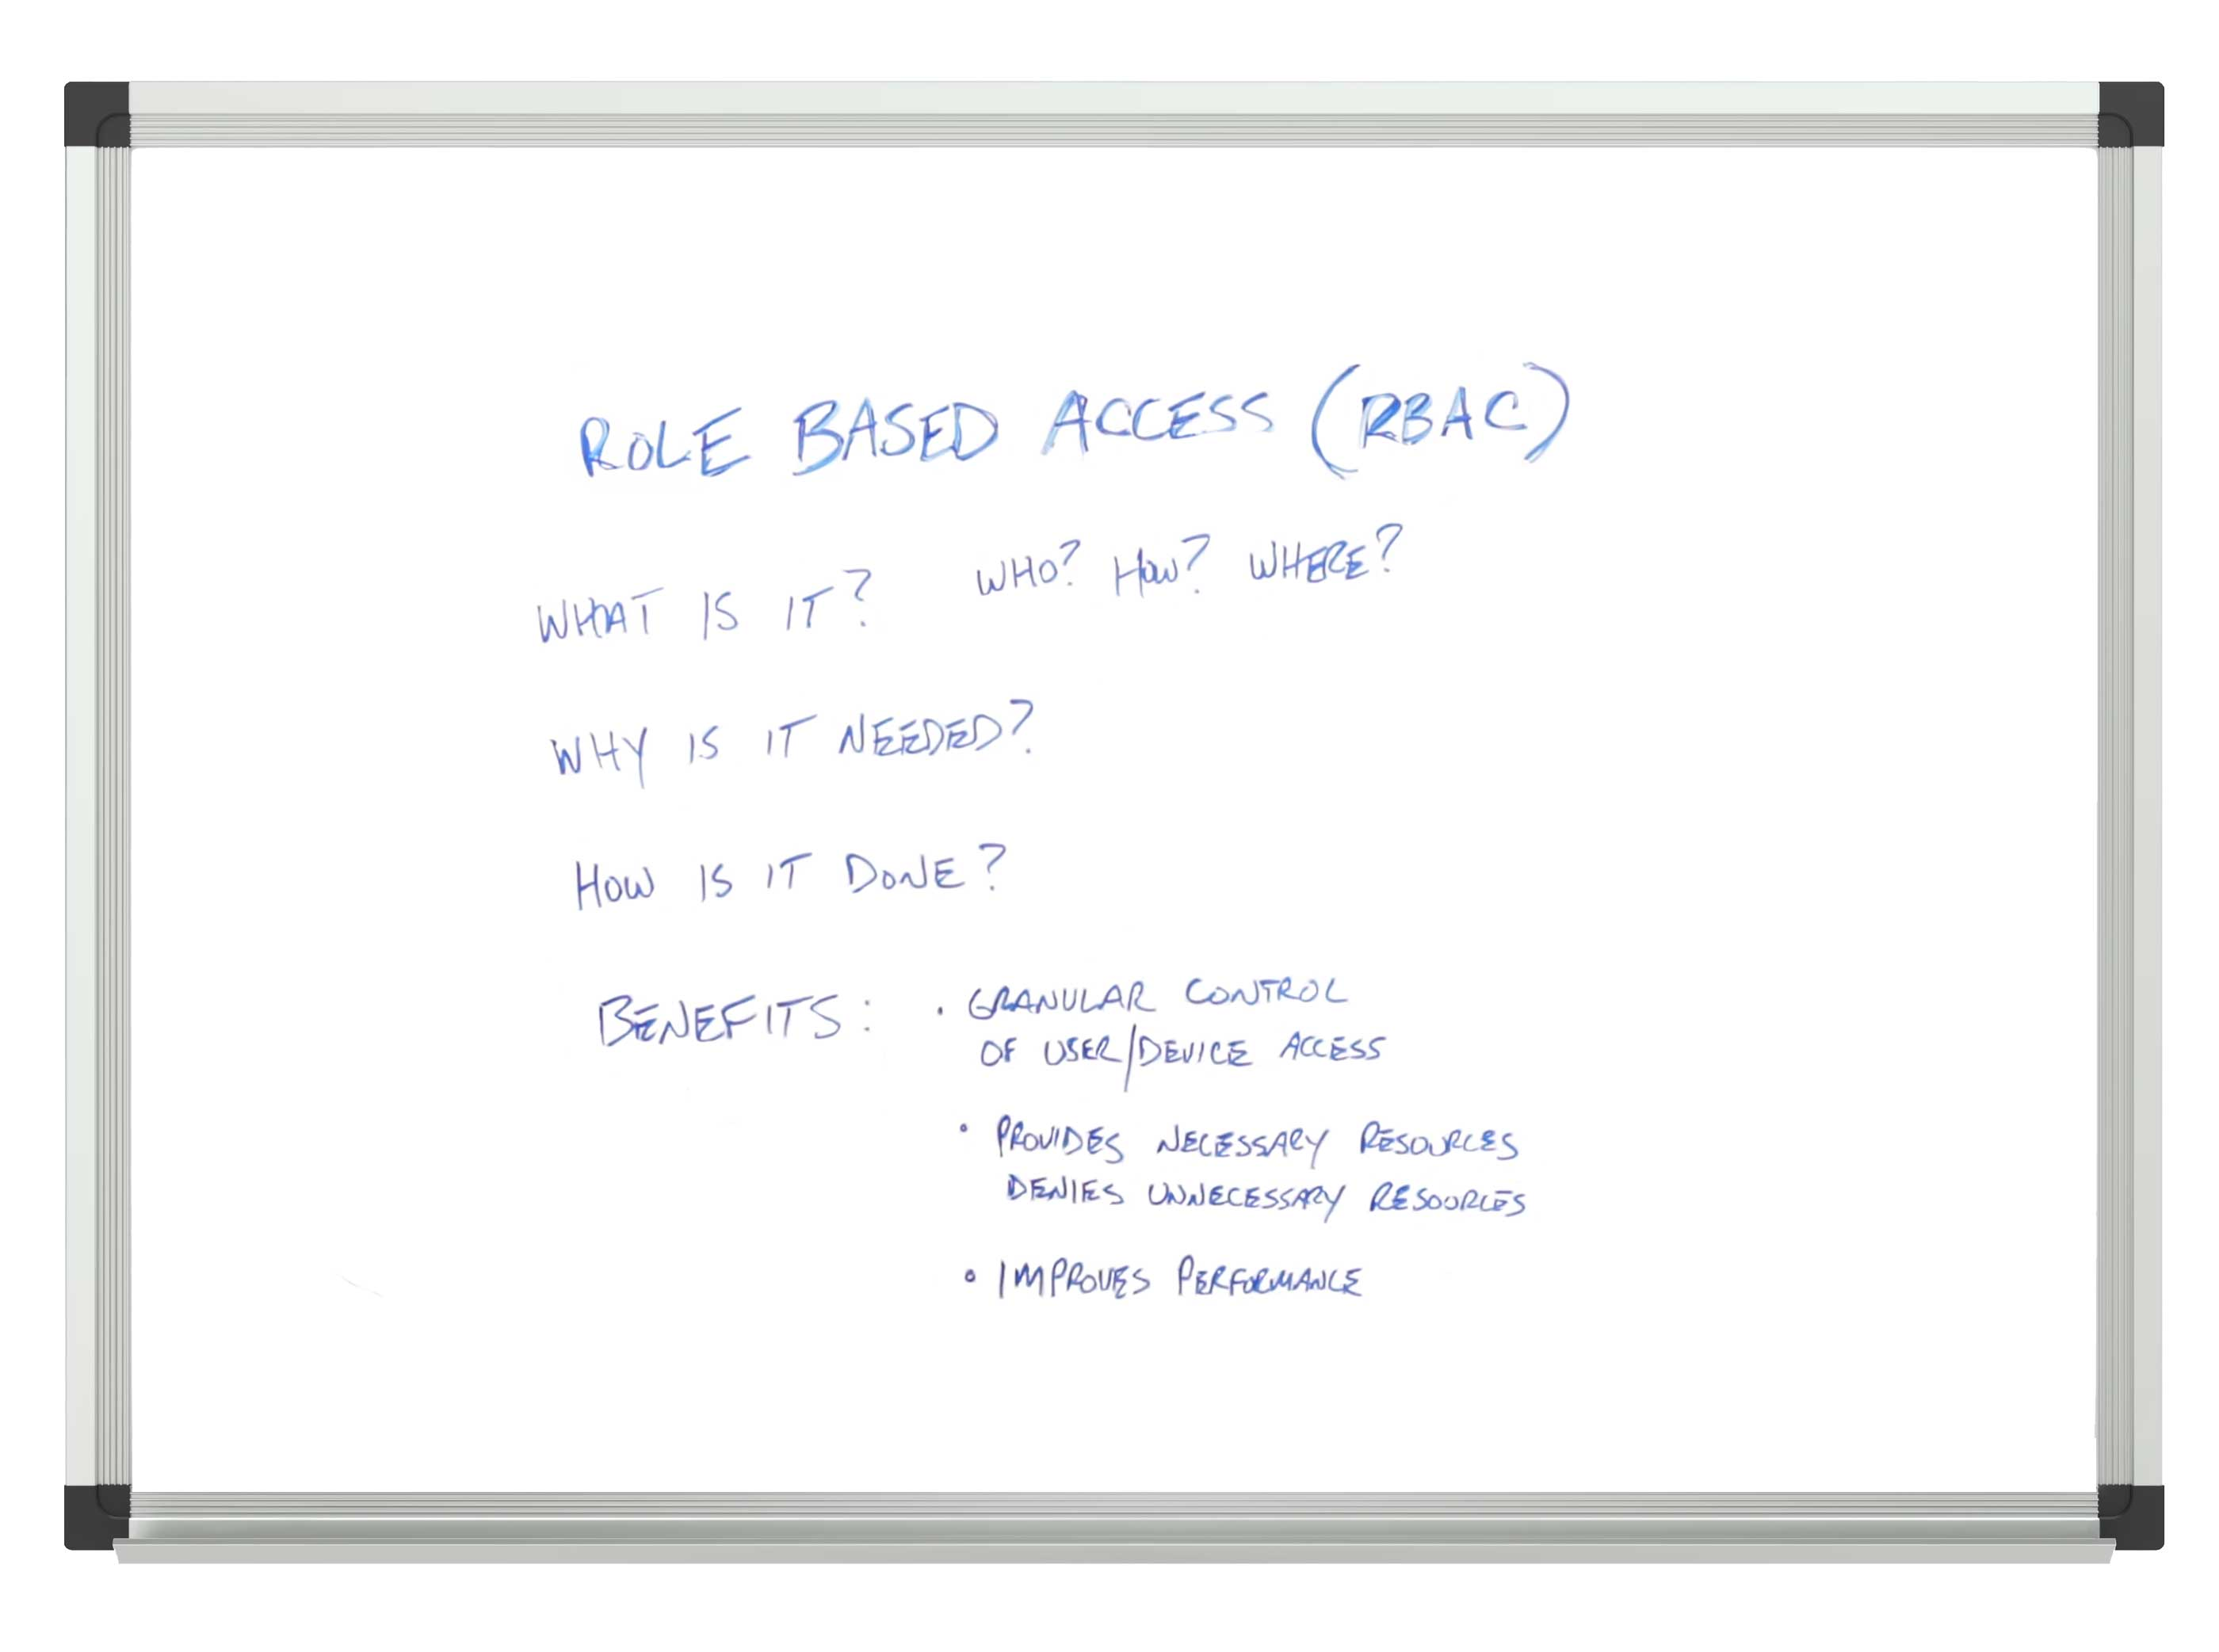 role-based-access-control-what-is-it-and-what-are-the-benefits.jpg